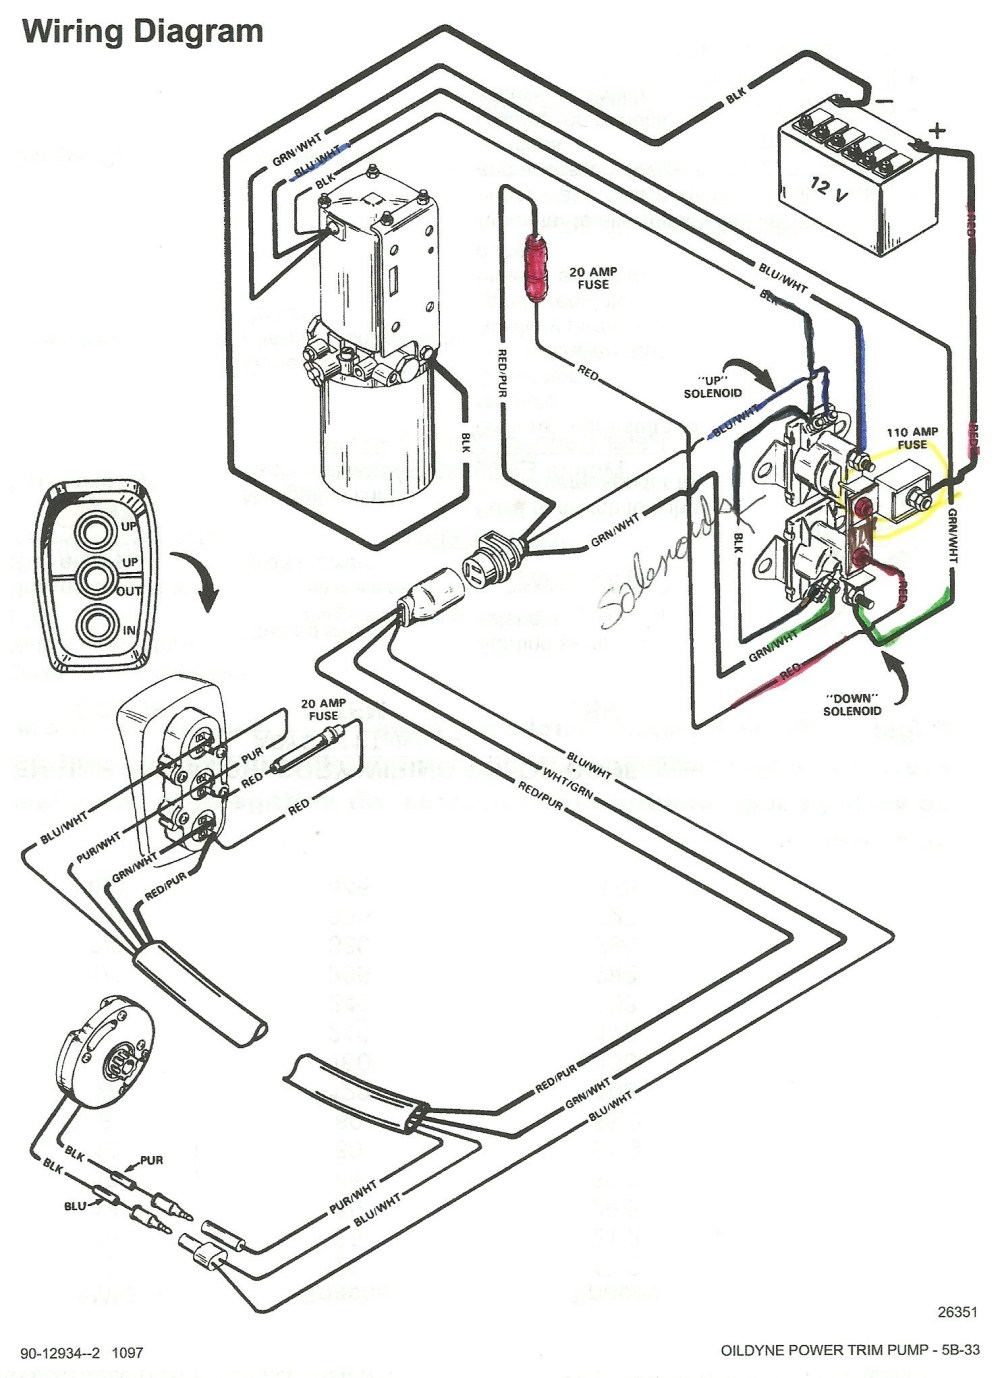 medium resolution of mercruiser trim pump wiring diagram on mercury capri wiring diagram mercury power trim manual mercury power